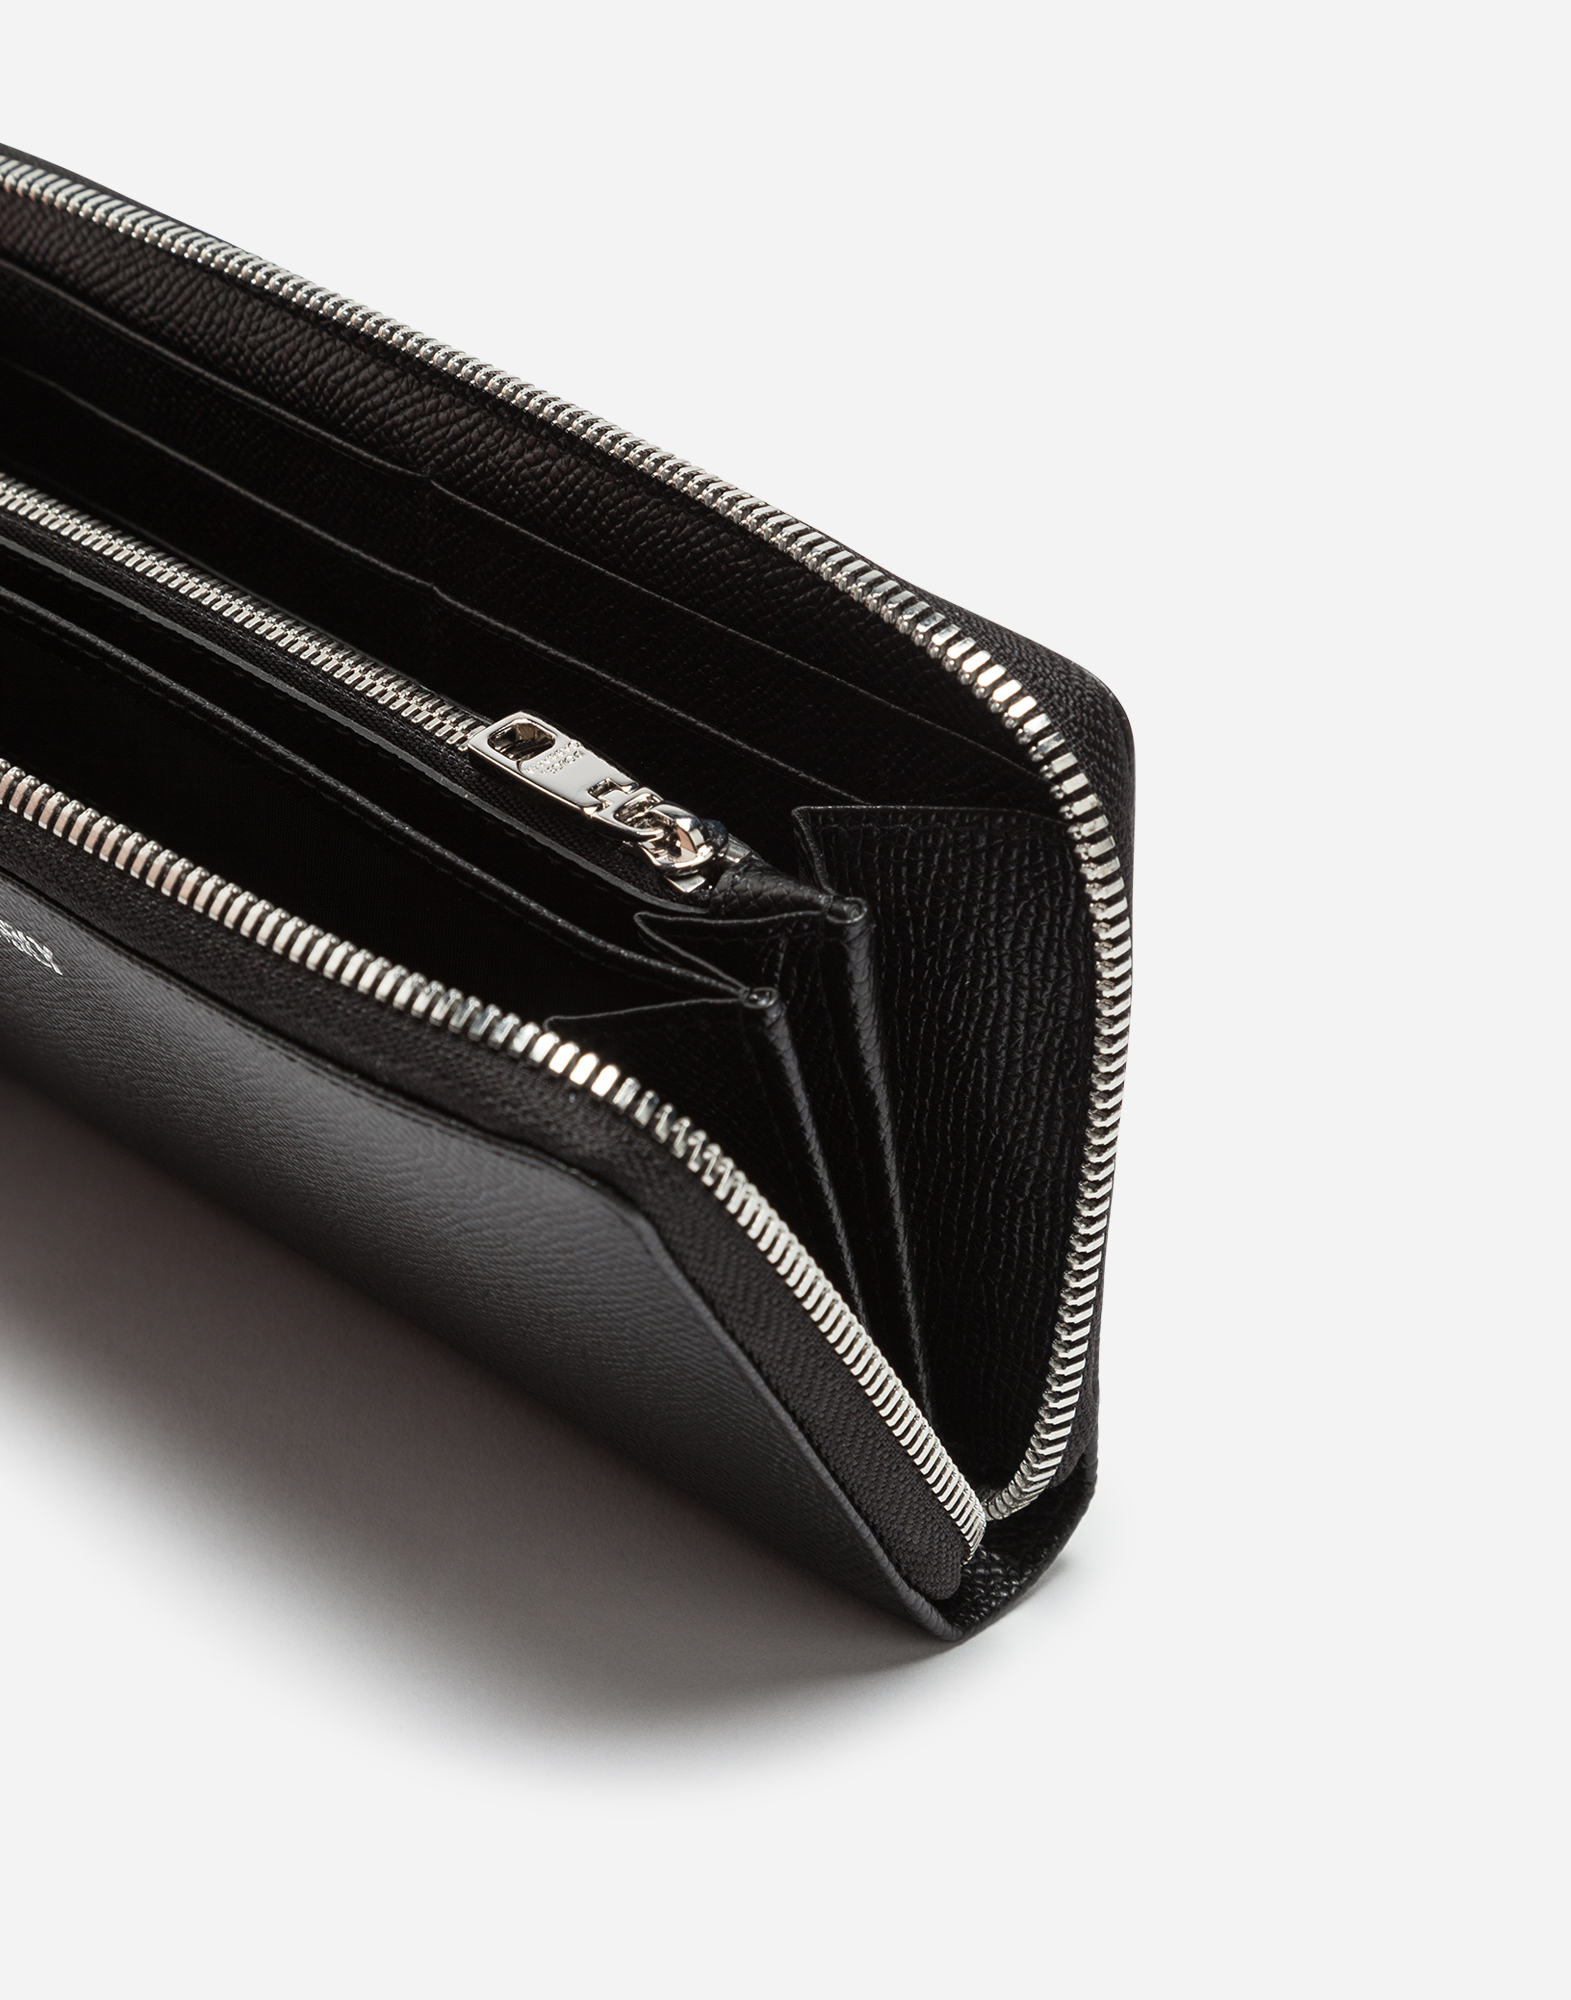 ZIP-AROUND WALLET IN DAUPHINE CALFSKIN WITH DESIGNERS' PATCHES